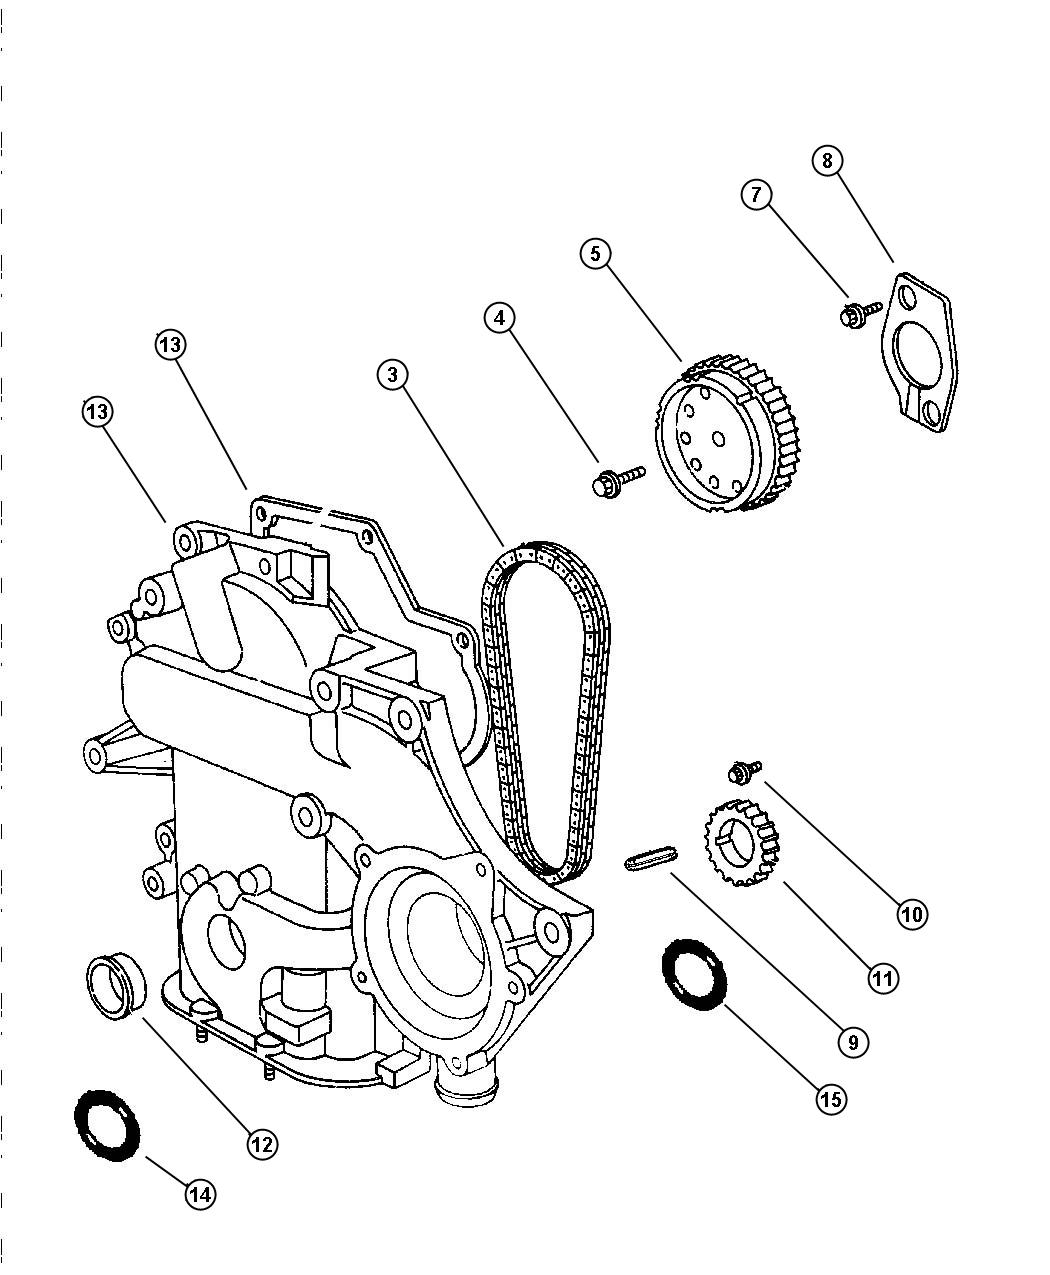 Nissan Lucino Wiring Diagram